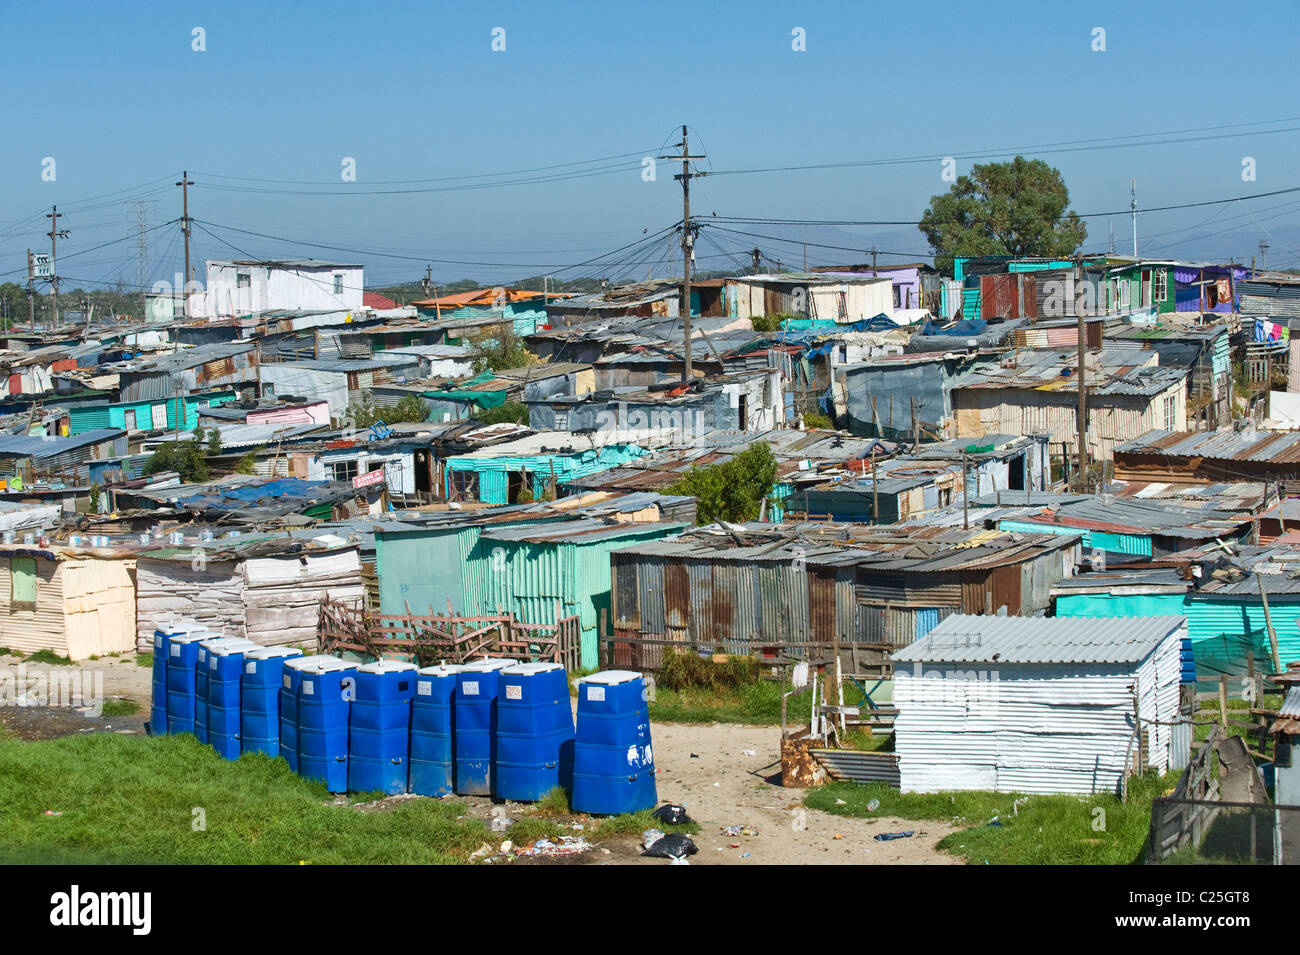 Public toilets in Khayelitsha township in Cape Town South Africa - Stock Image